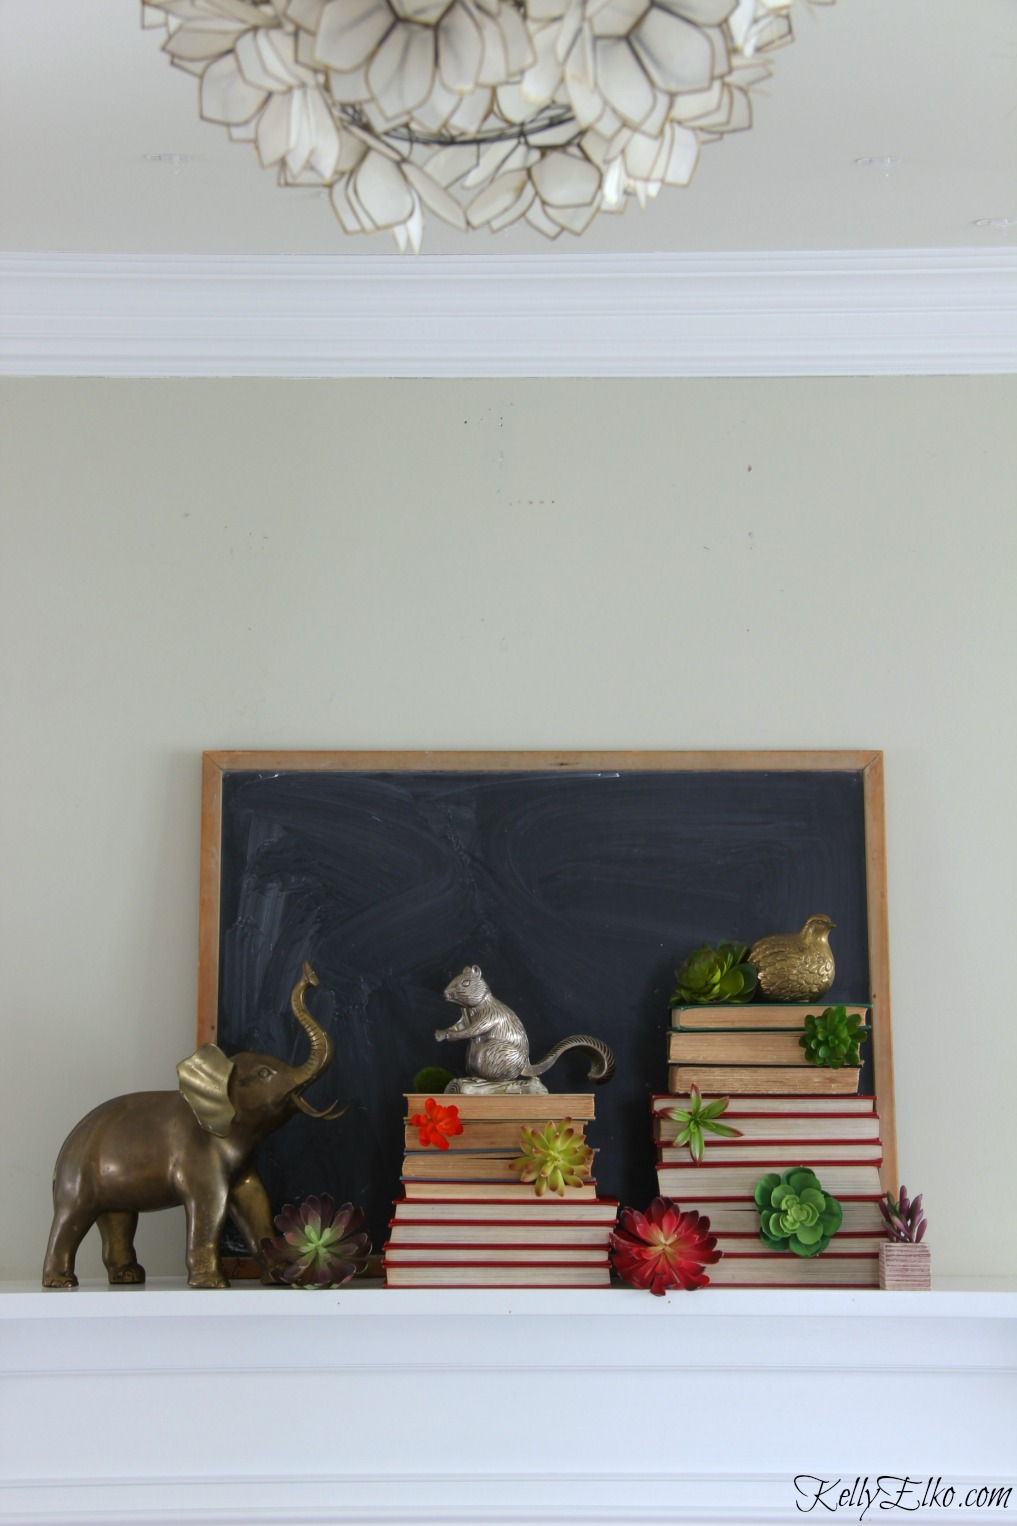 Vintage winter mantel - love the stacks of books with succulents and collection of brass animals kellyelko.com